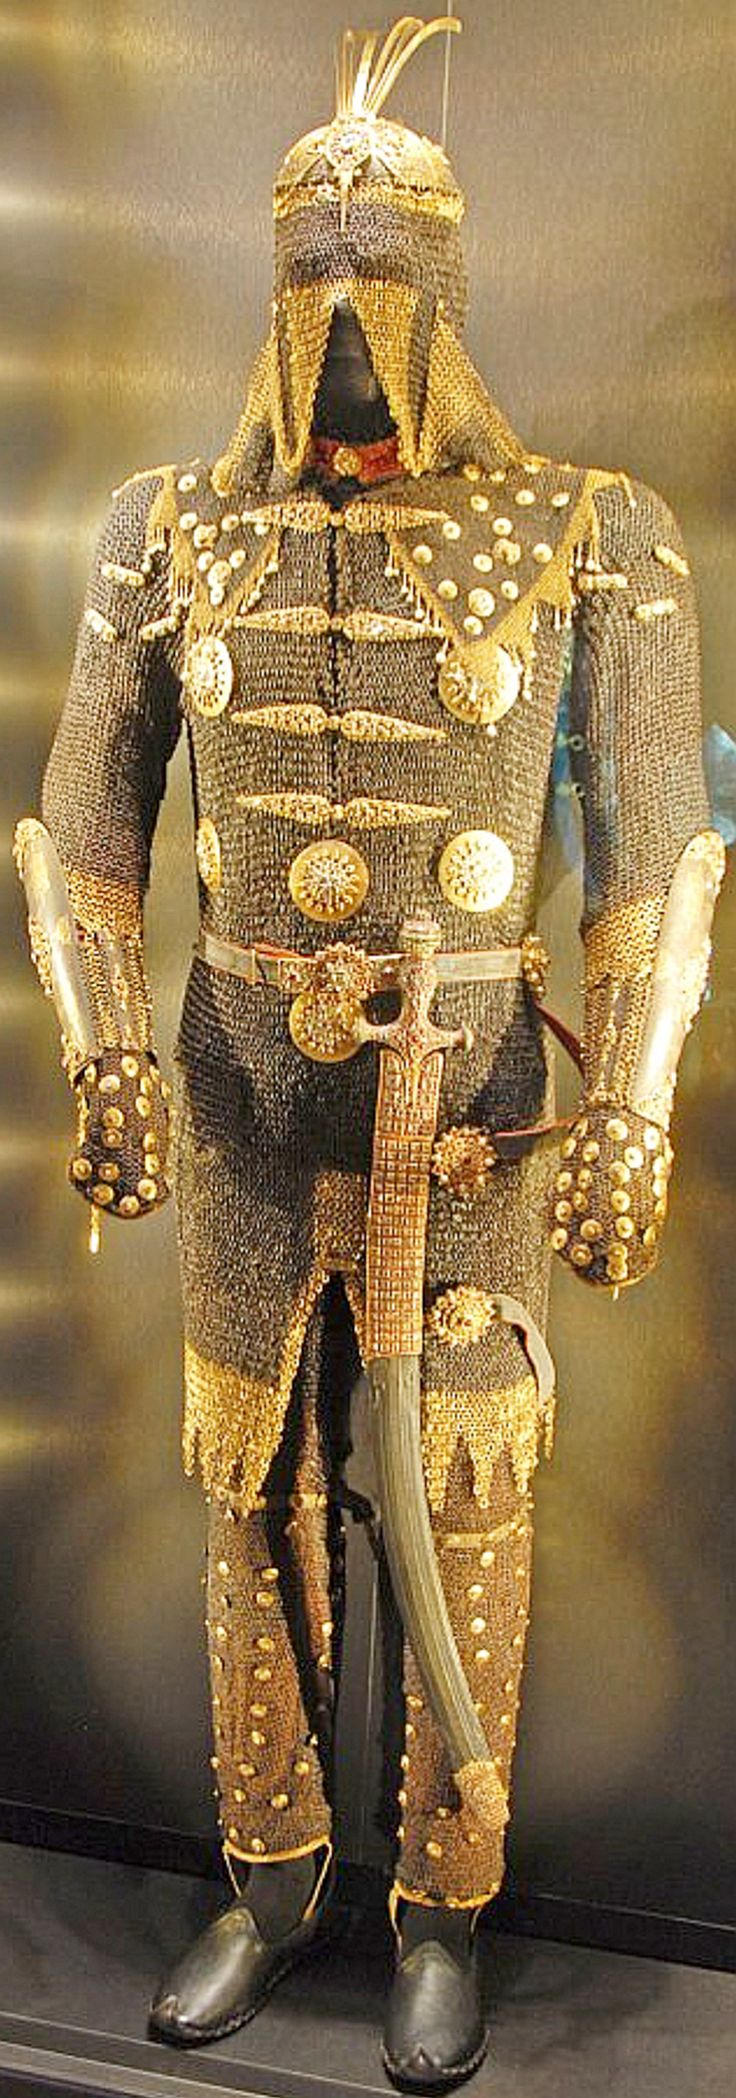 Ottoman Empire armor belonging to Sultan Mustafa III consisting of migfer (helmet), zirah (mail shirt), mail trousers, kolluk/bazu band (vambrace/arm guards), shamshir (sabre), decorated with gold and encrusted with jewels, 18th century, exhibited in the Imperial Treasury of Topkapi Palace, Istanbul, Turkey.